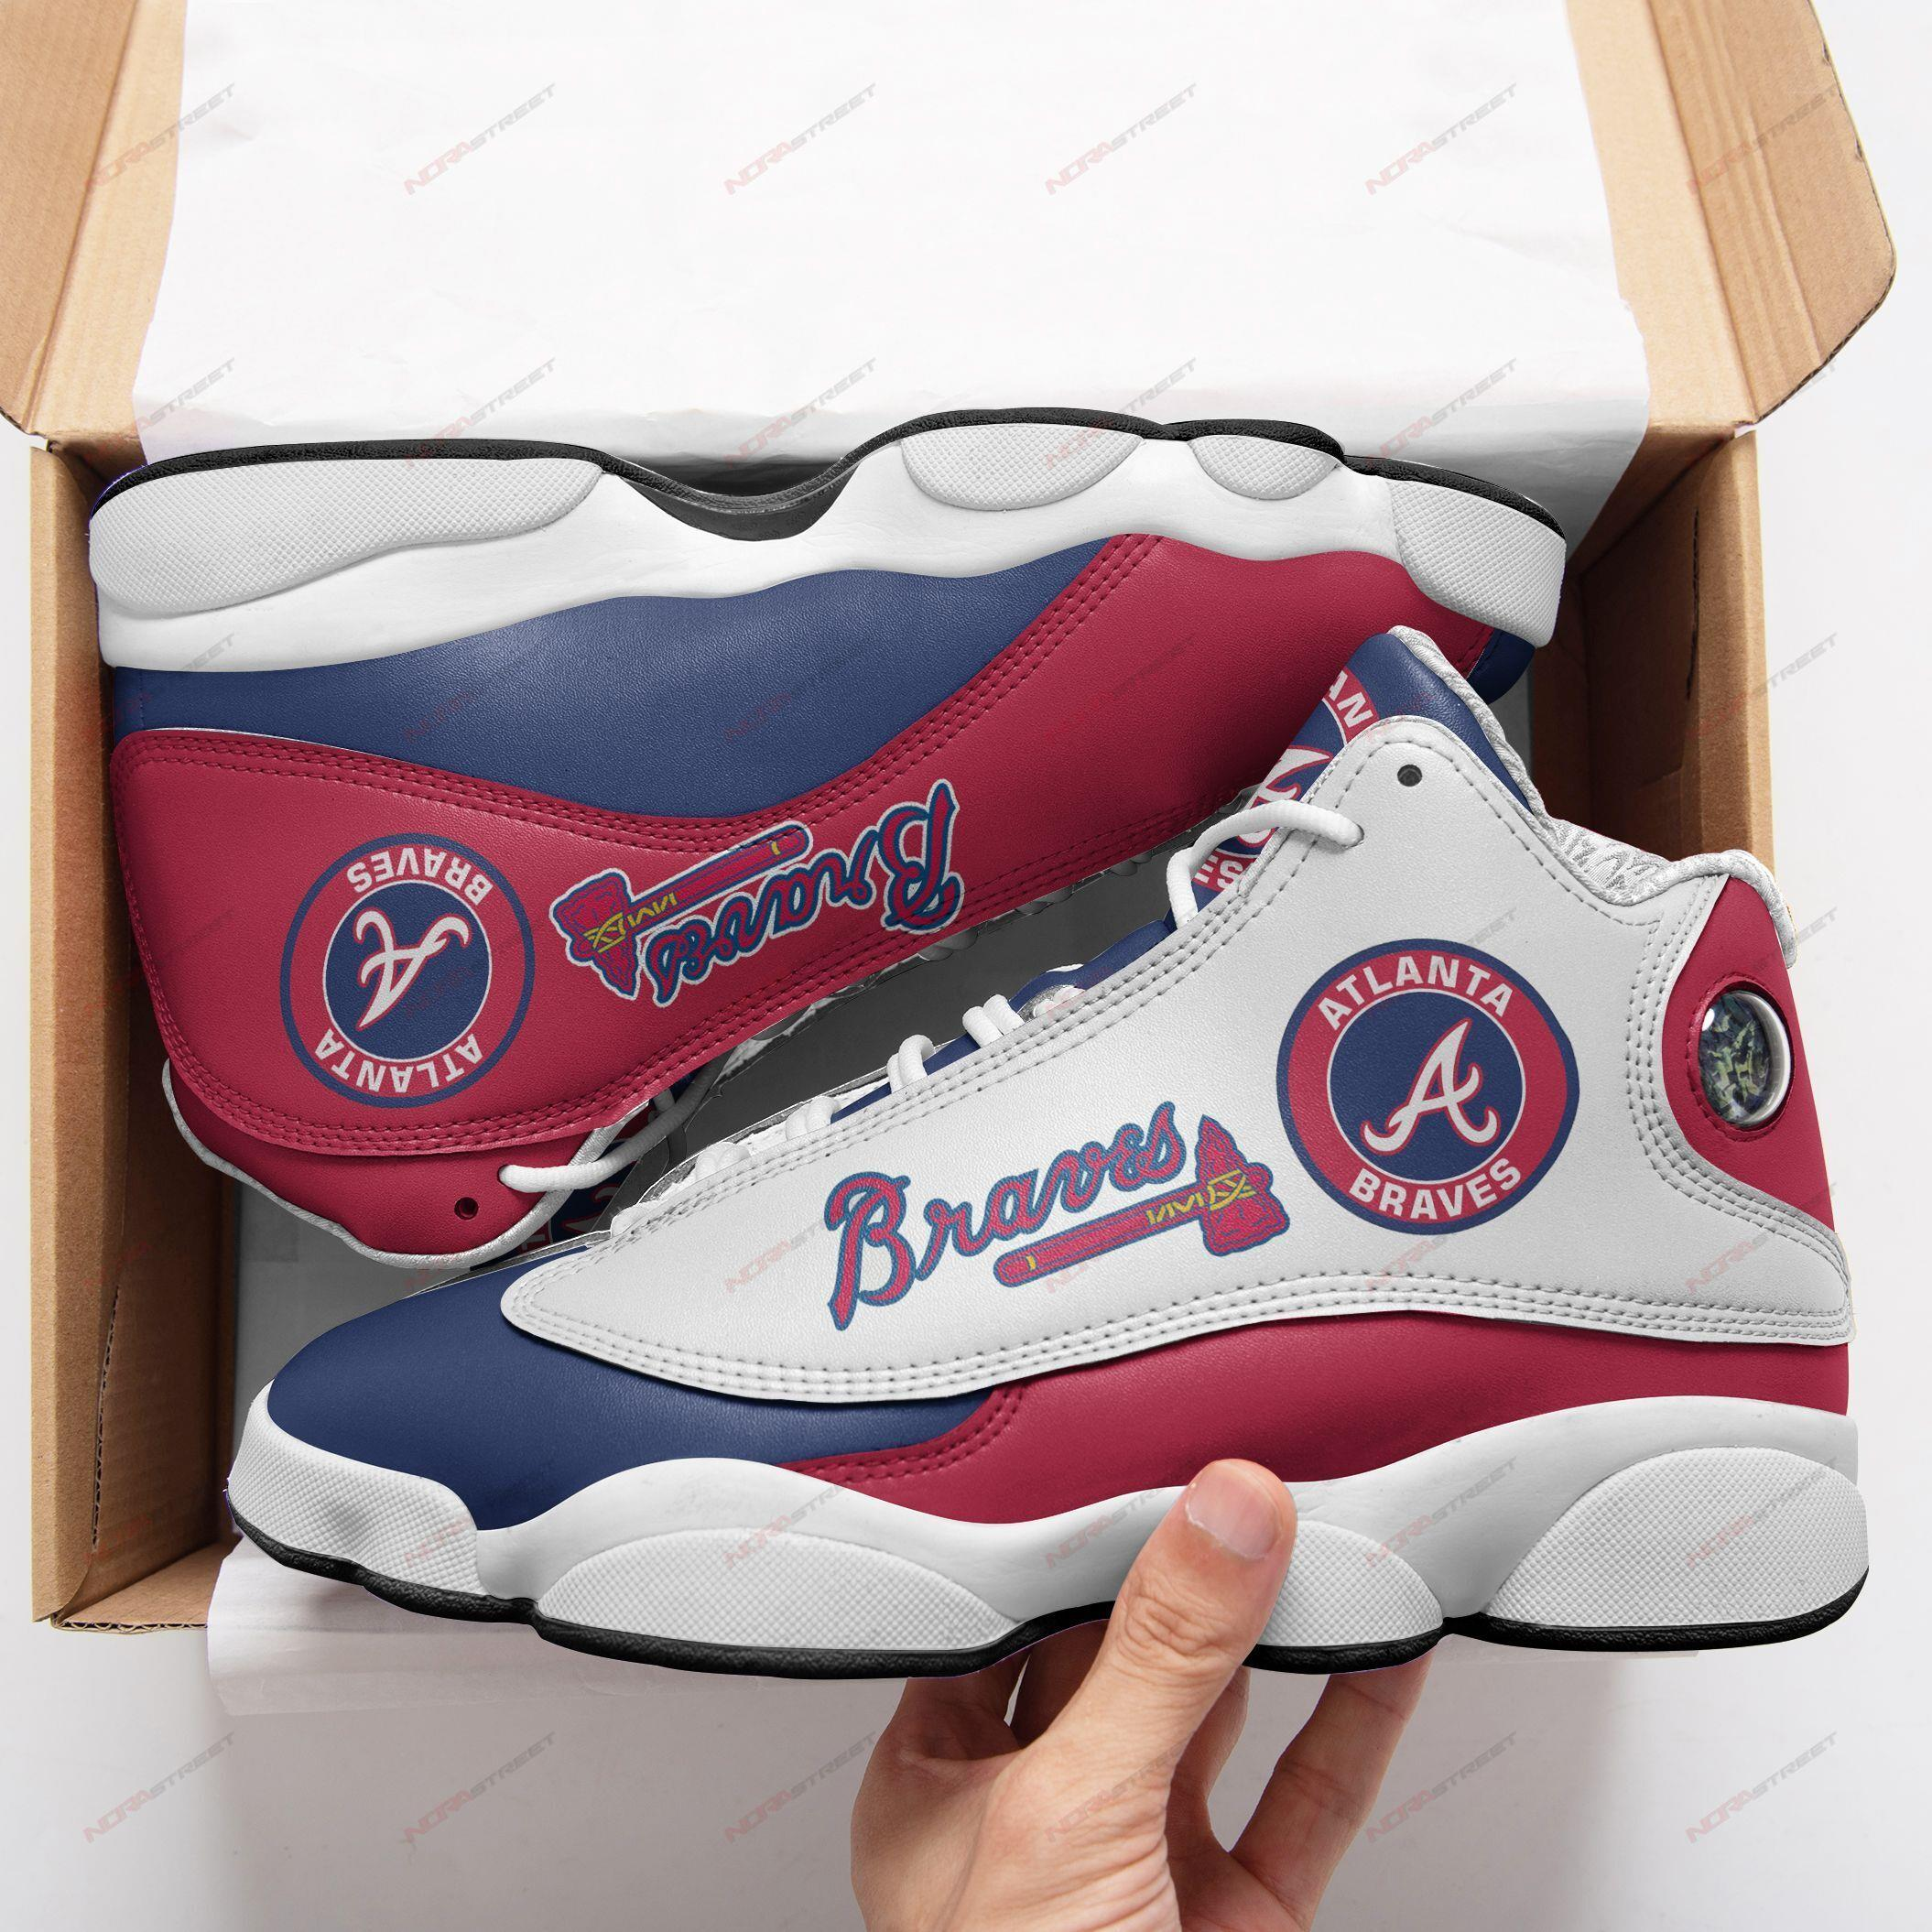 Atlanta Braves Air Jordan 13 Sneakers Sport Shoes Plus Size